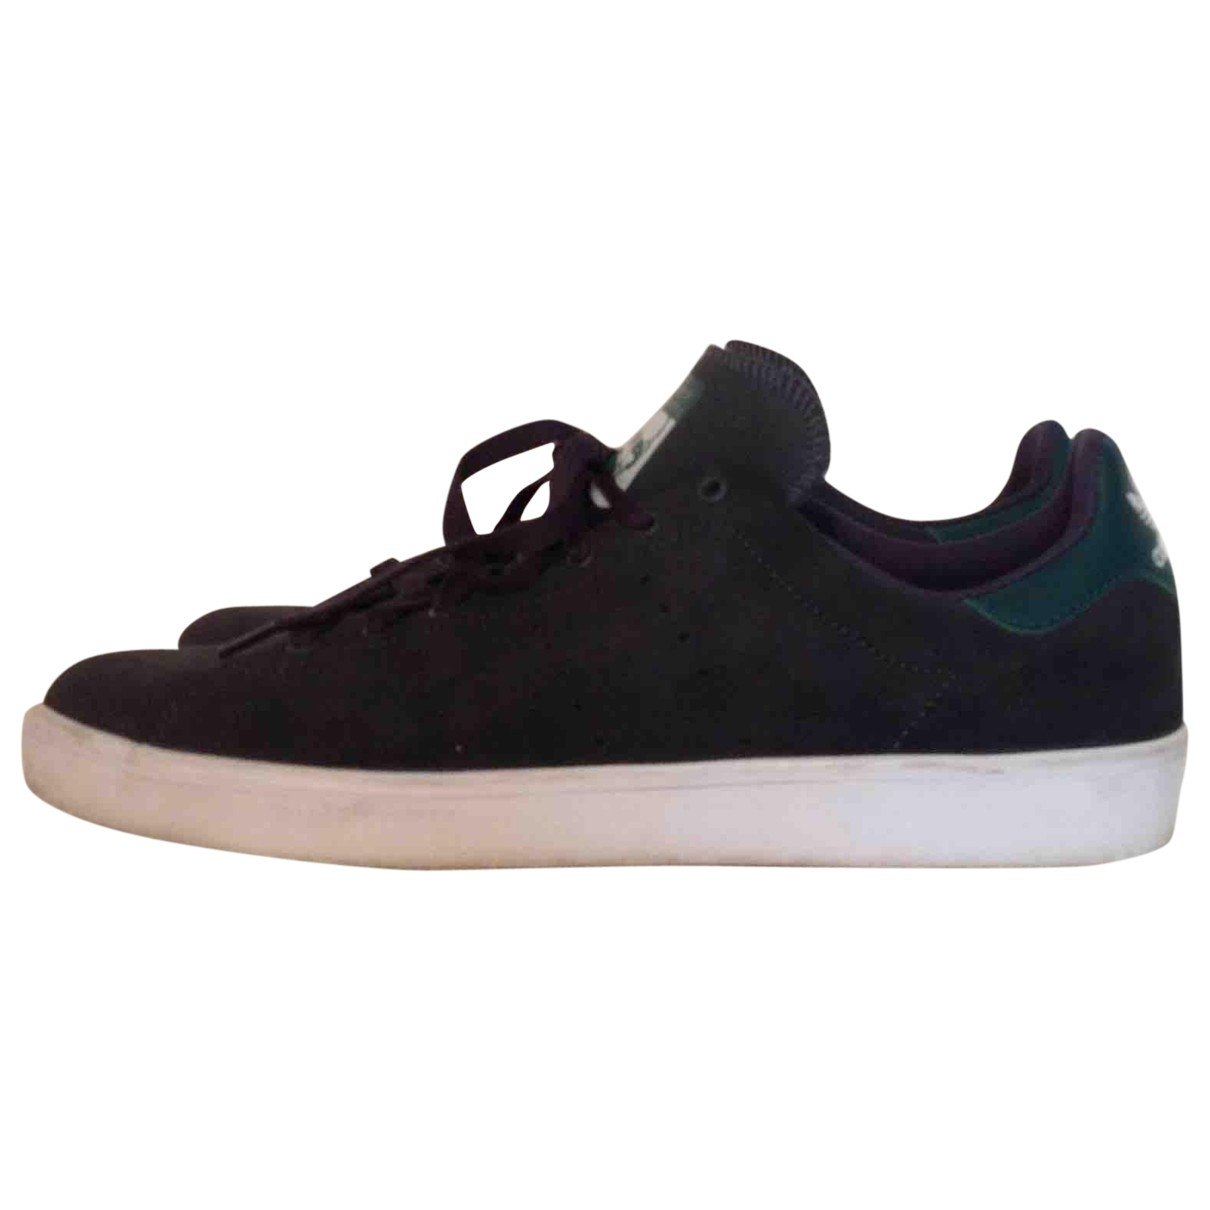 Adidas Stan Smith Black Leather Trainers for Men 42 EU